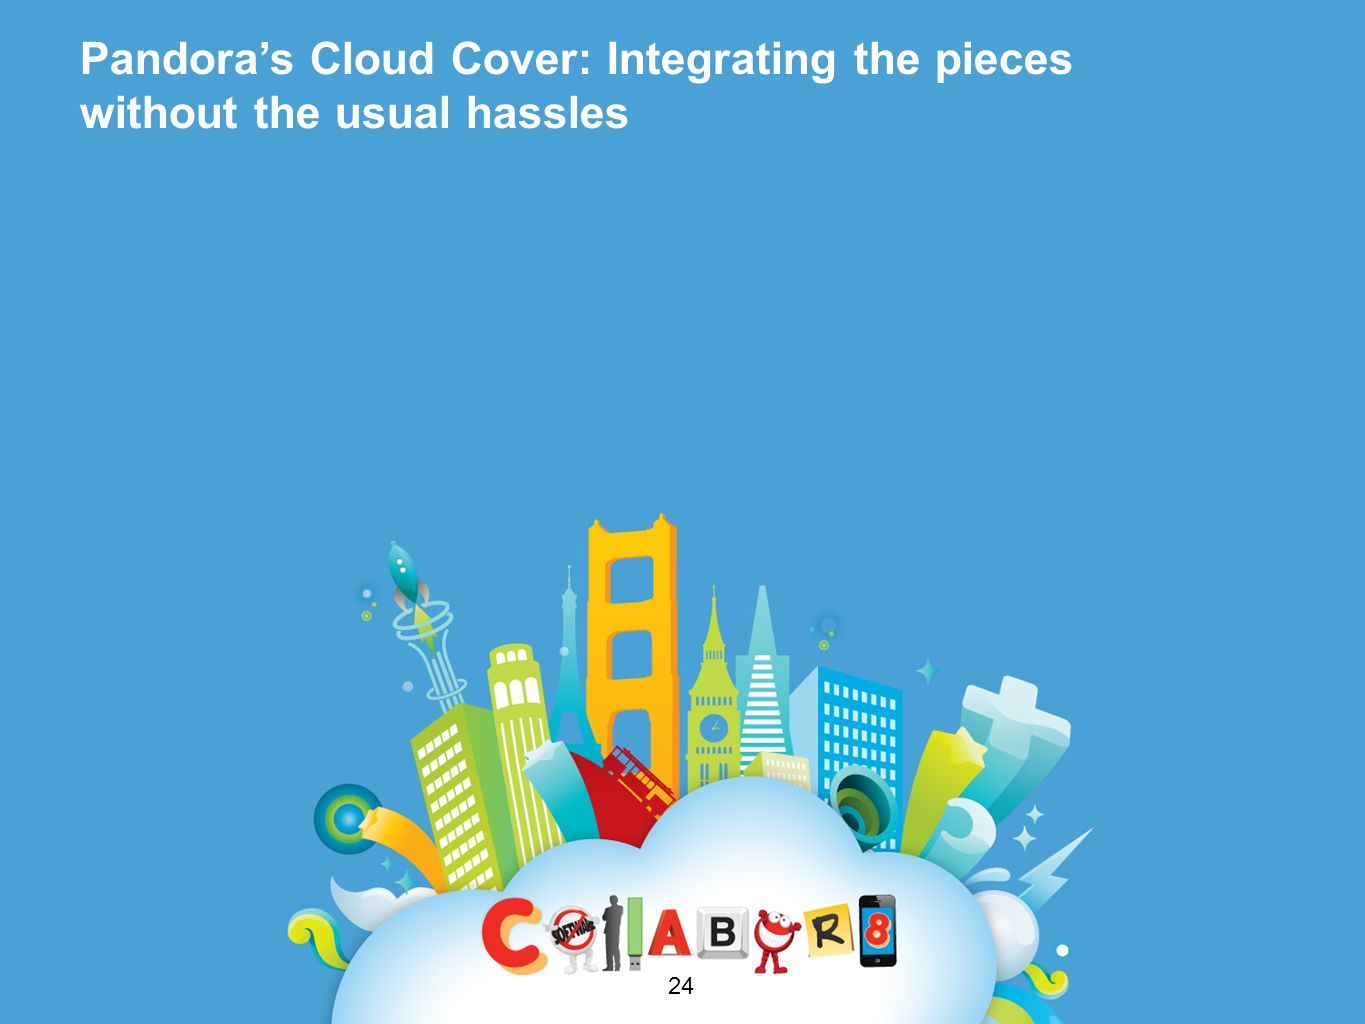 Pandoras Cloud Cover: Integrating the pieces without the usual hassles 24